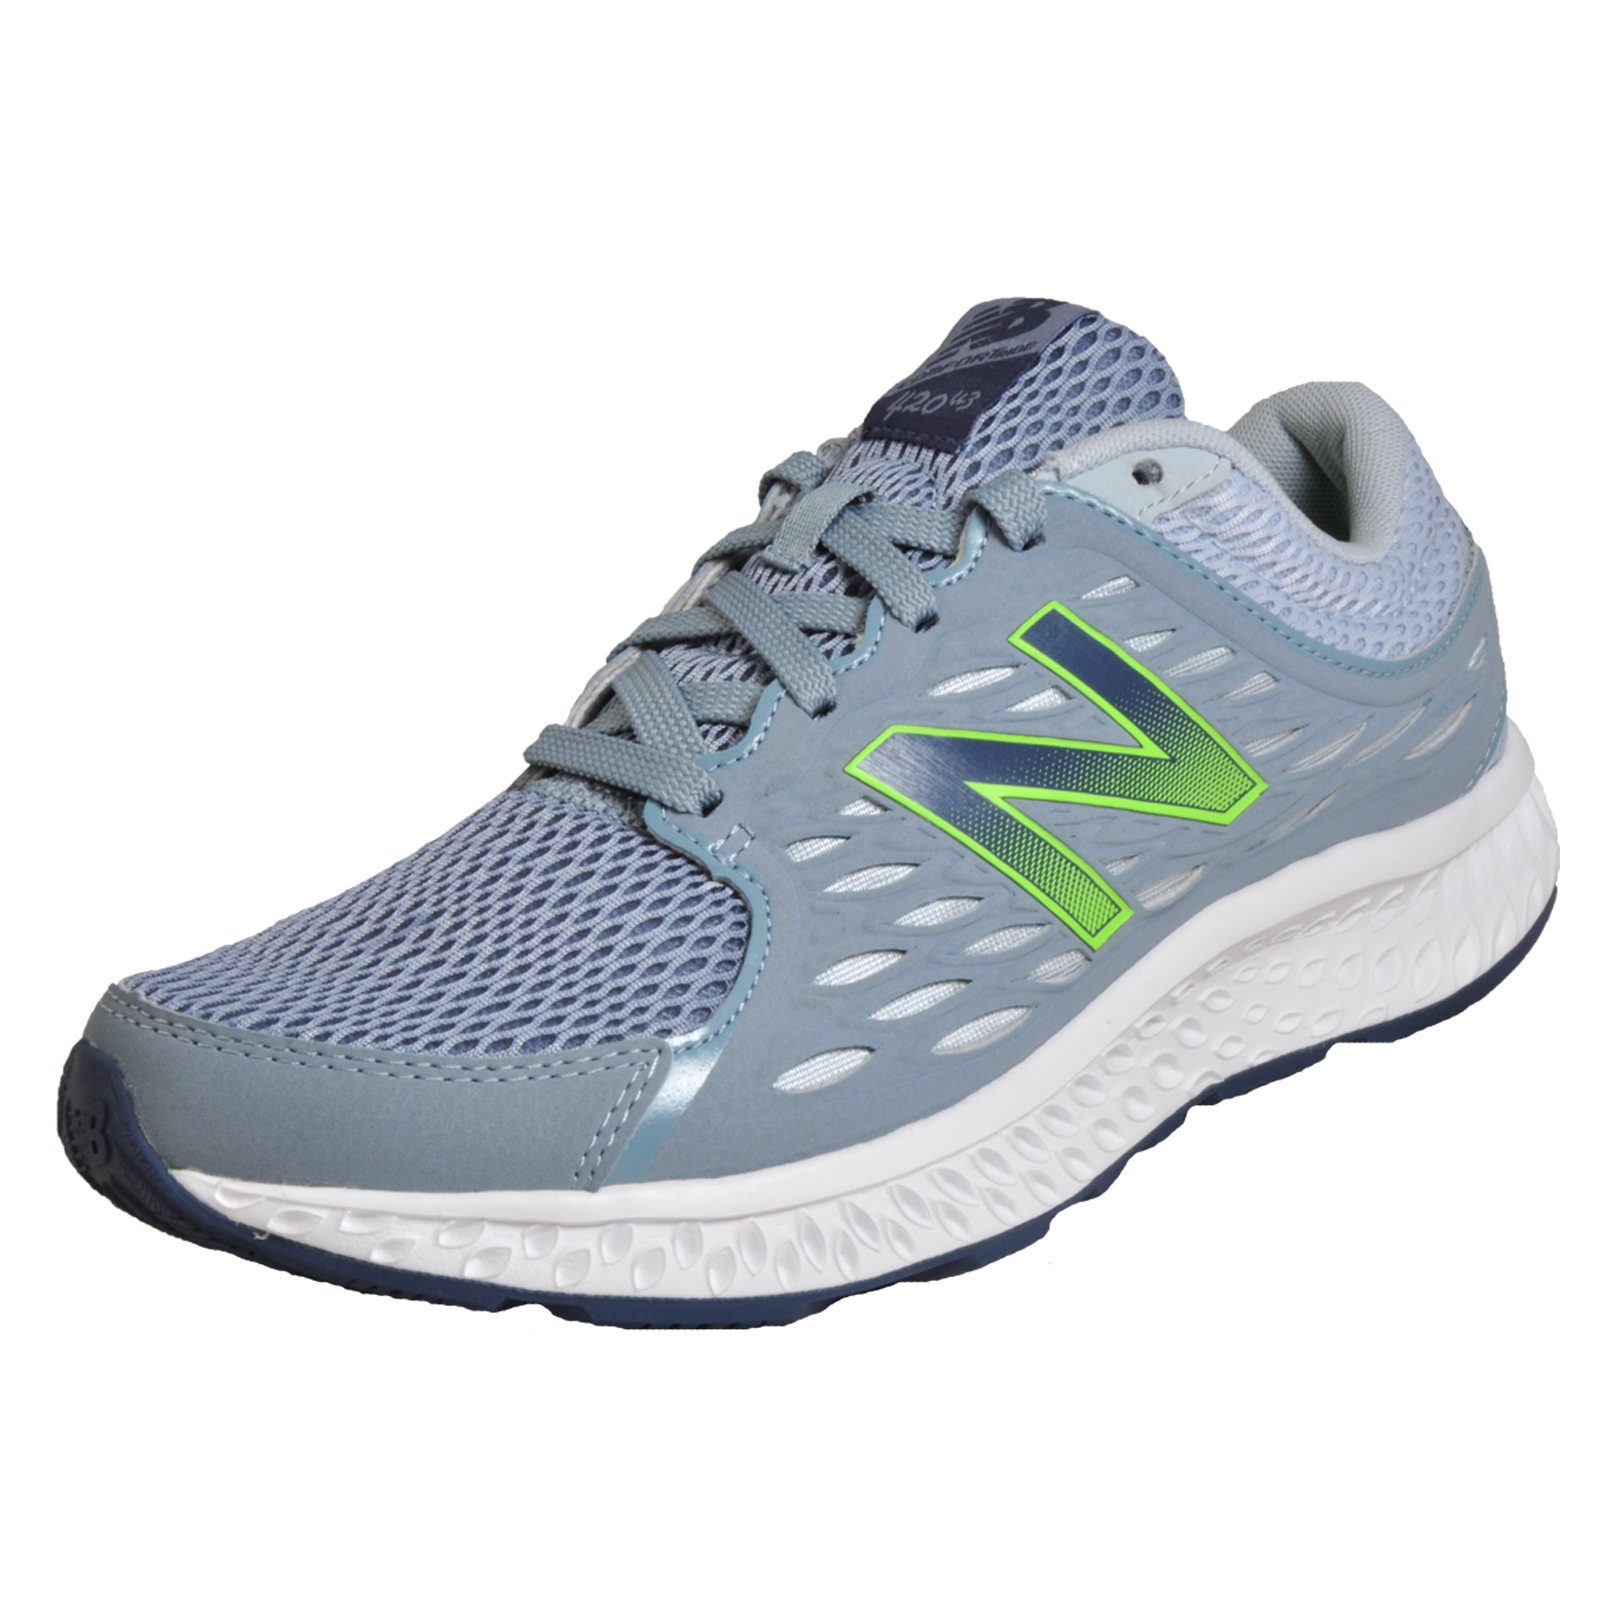 4e833398253864 Details about New Balance M420 V3 Men s Premium Running Shoes Fitness Gym  Trainers Grey